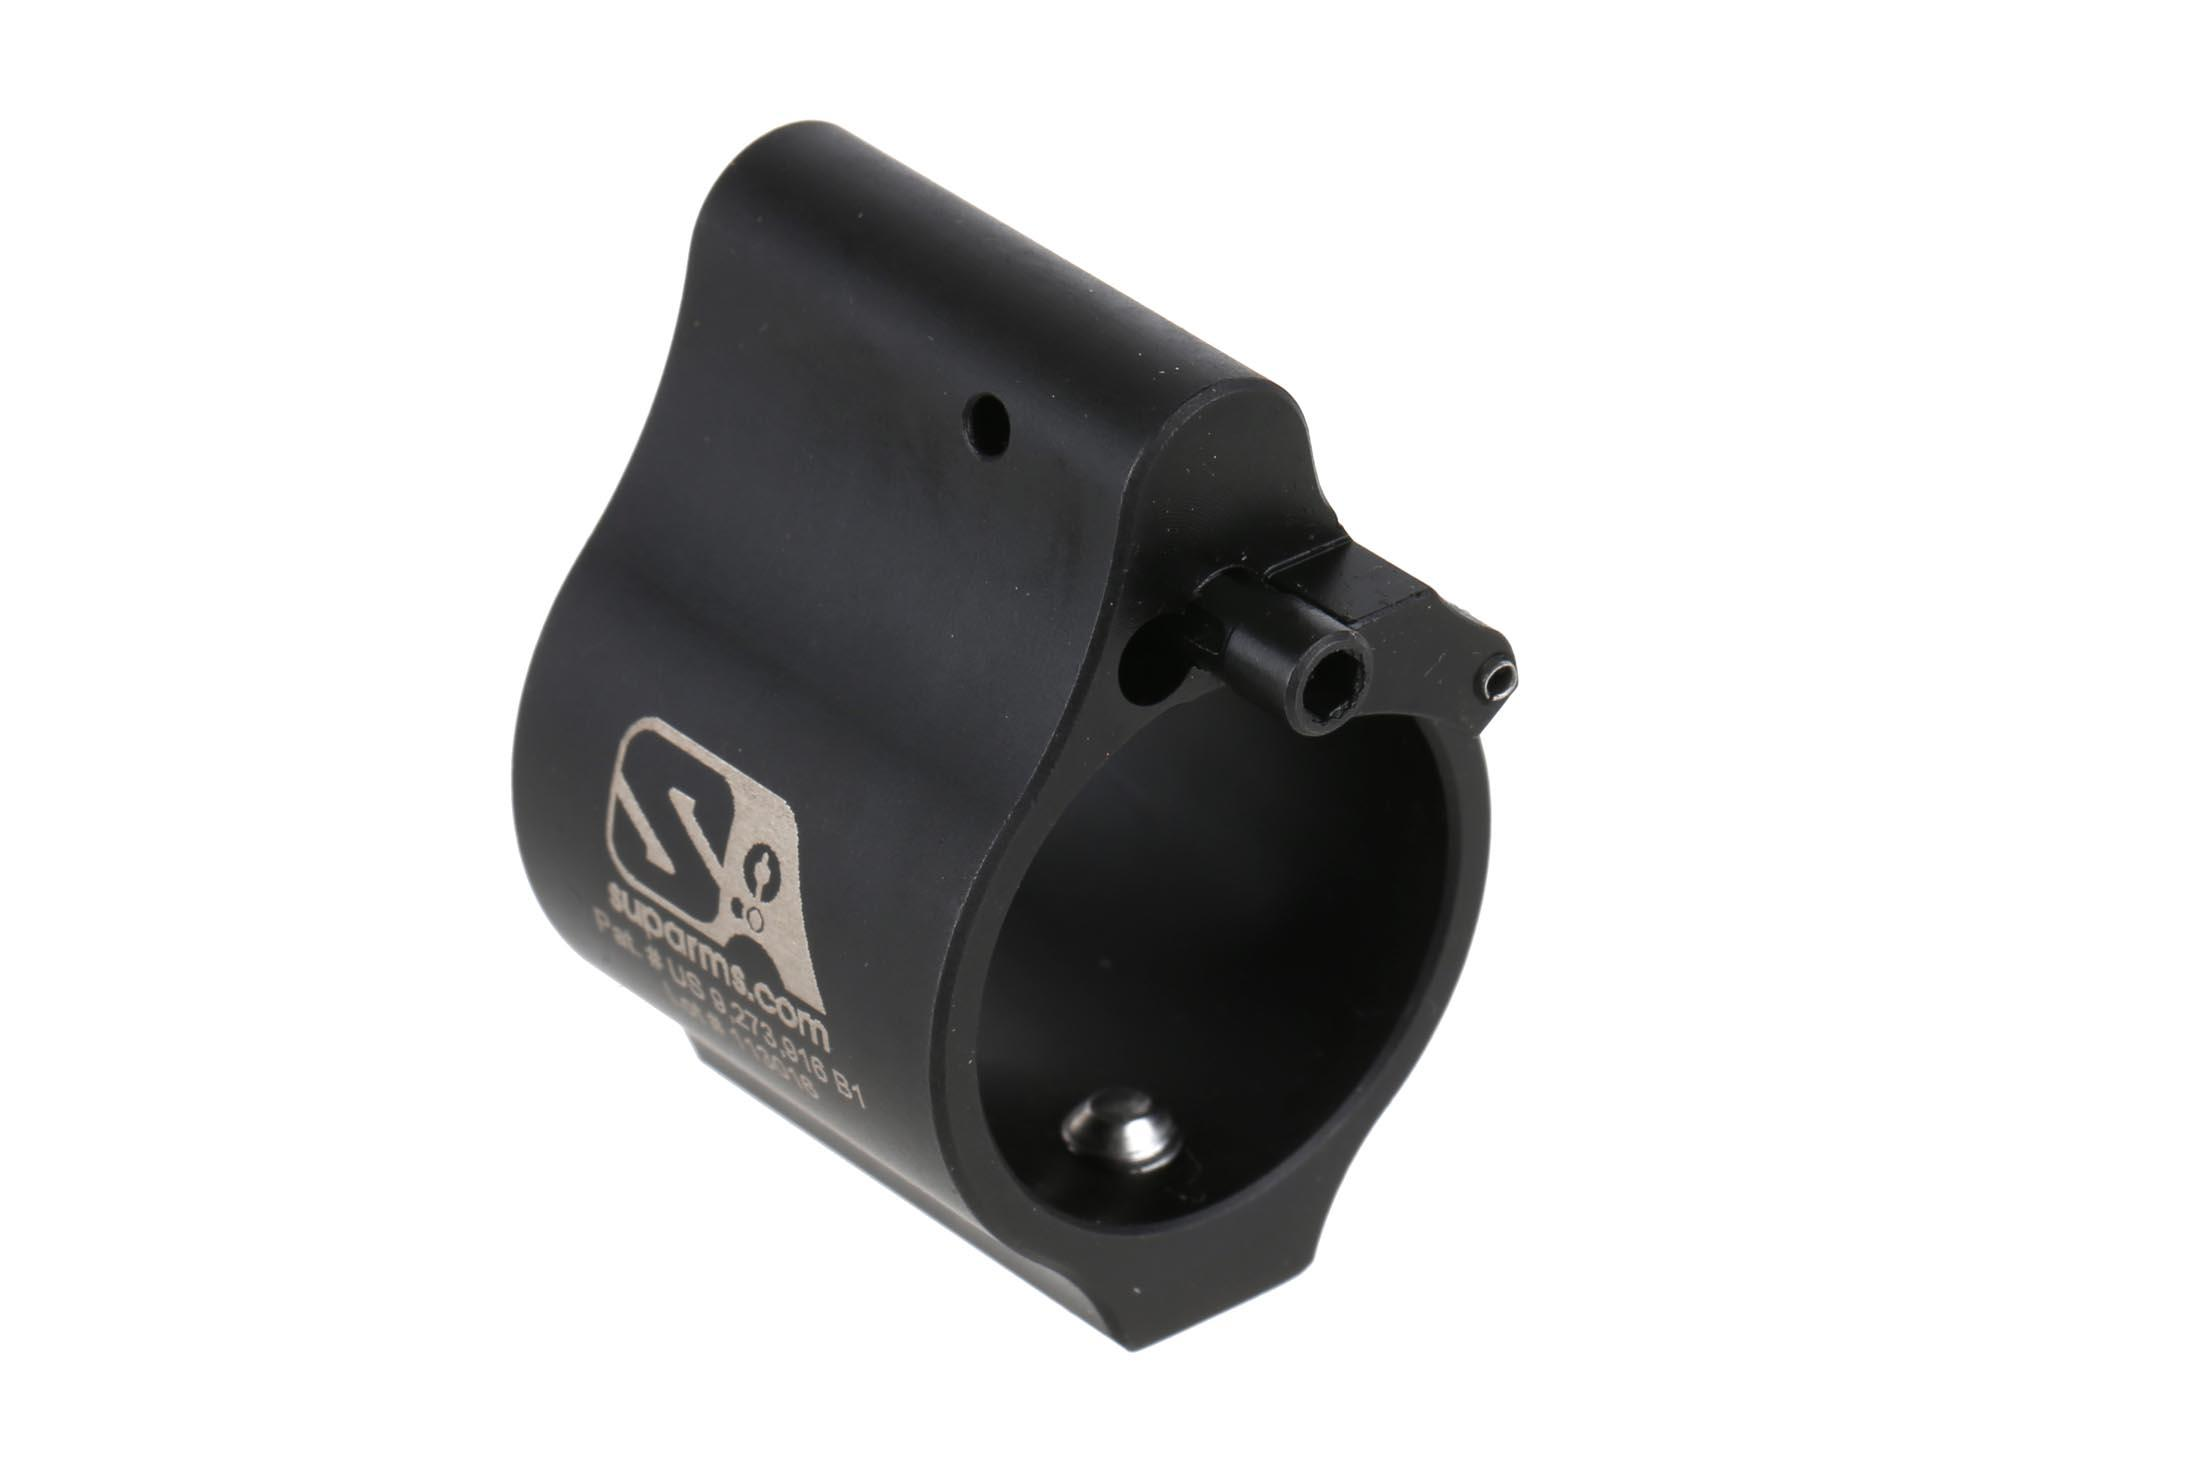 The Superlative Arms adjustable gas block for sale features multiple patented designs